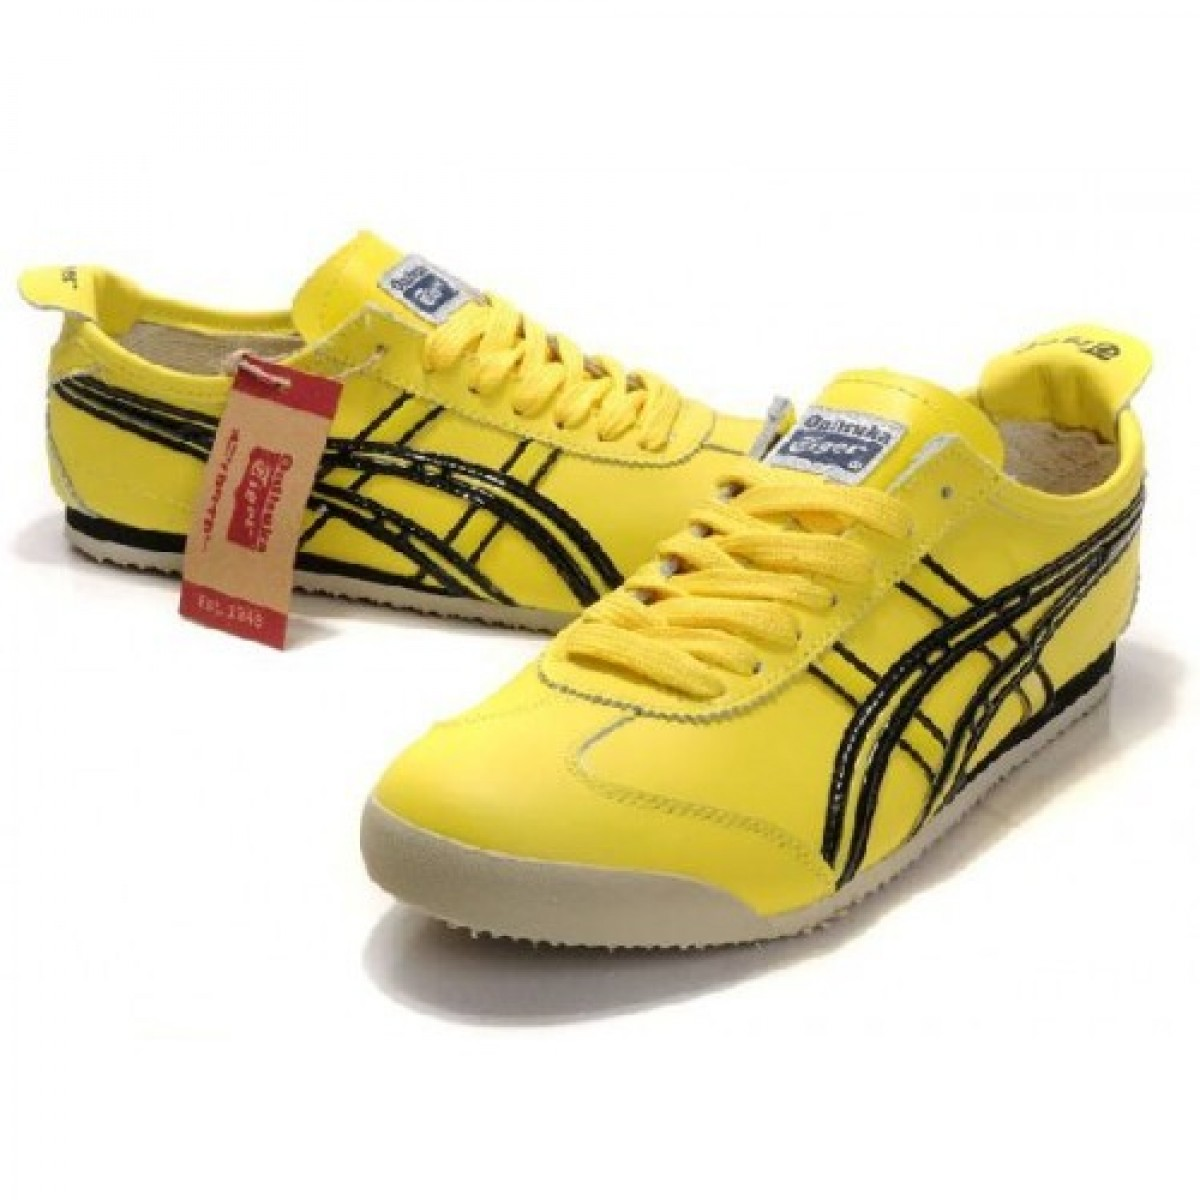 ID2581 Soldes Asics Onitsuka Tiger Mexico 66 chaussures jaune noir 57815323 Pas Cher